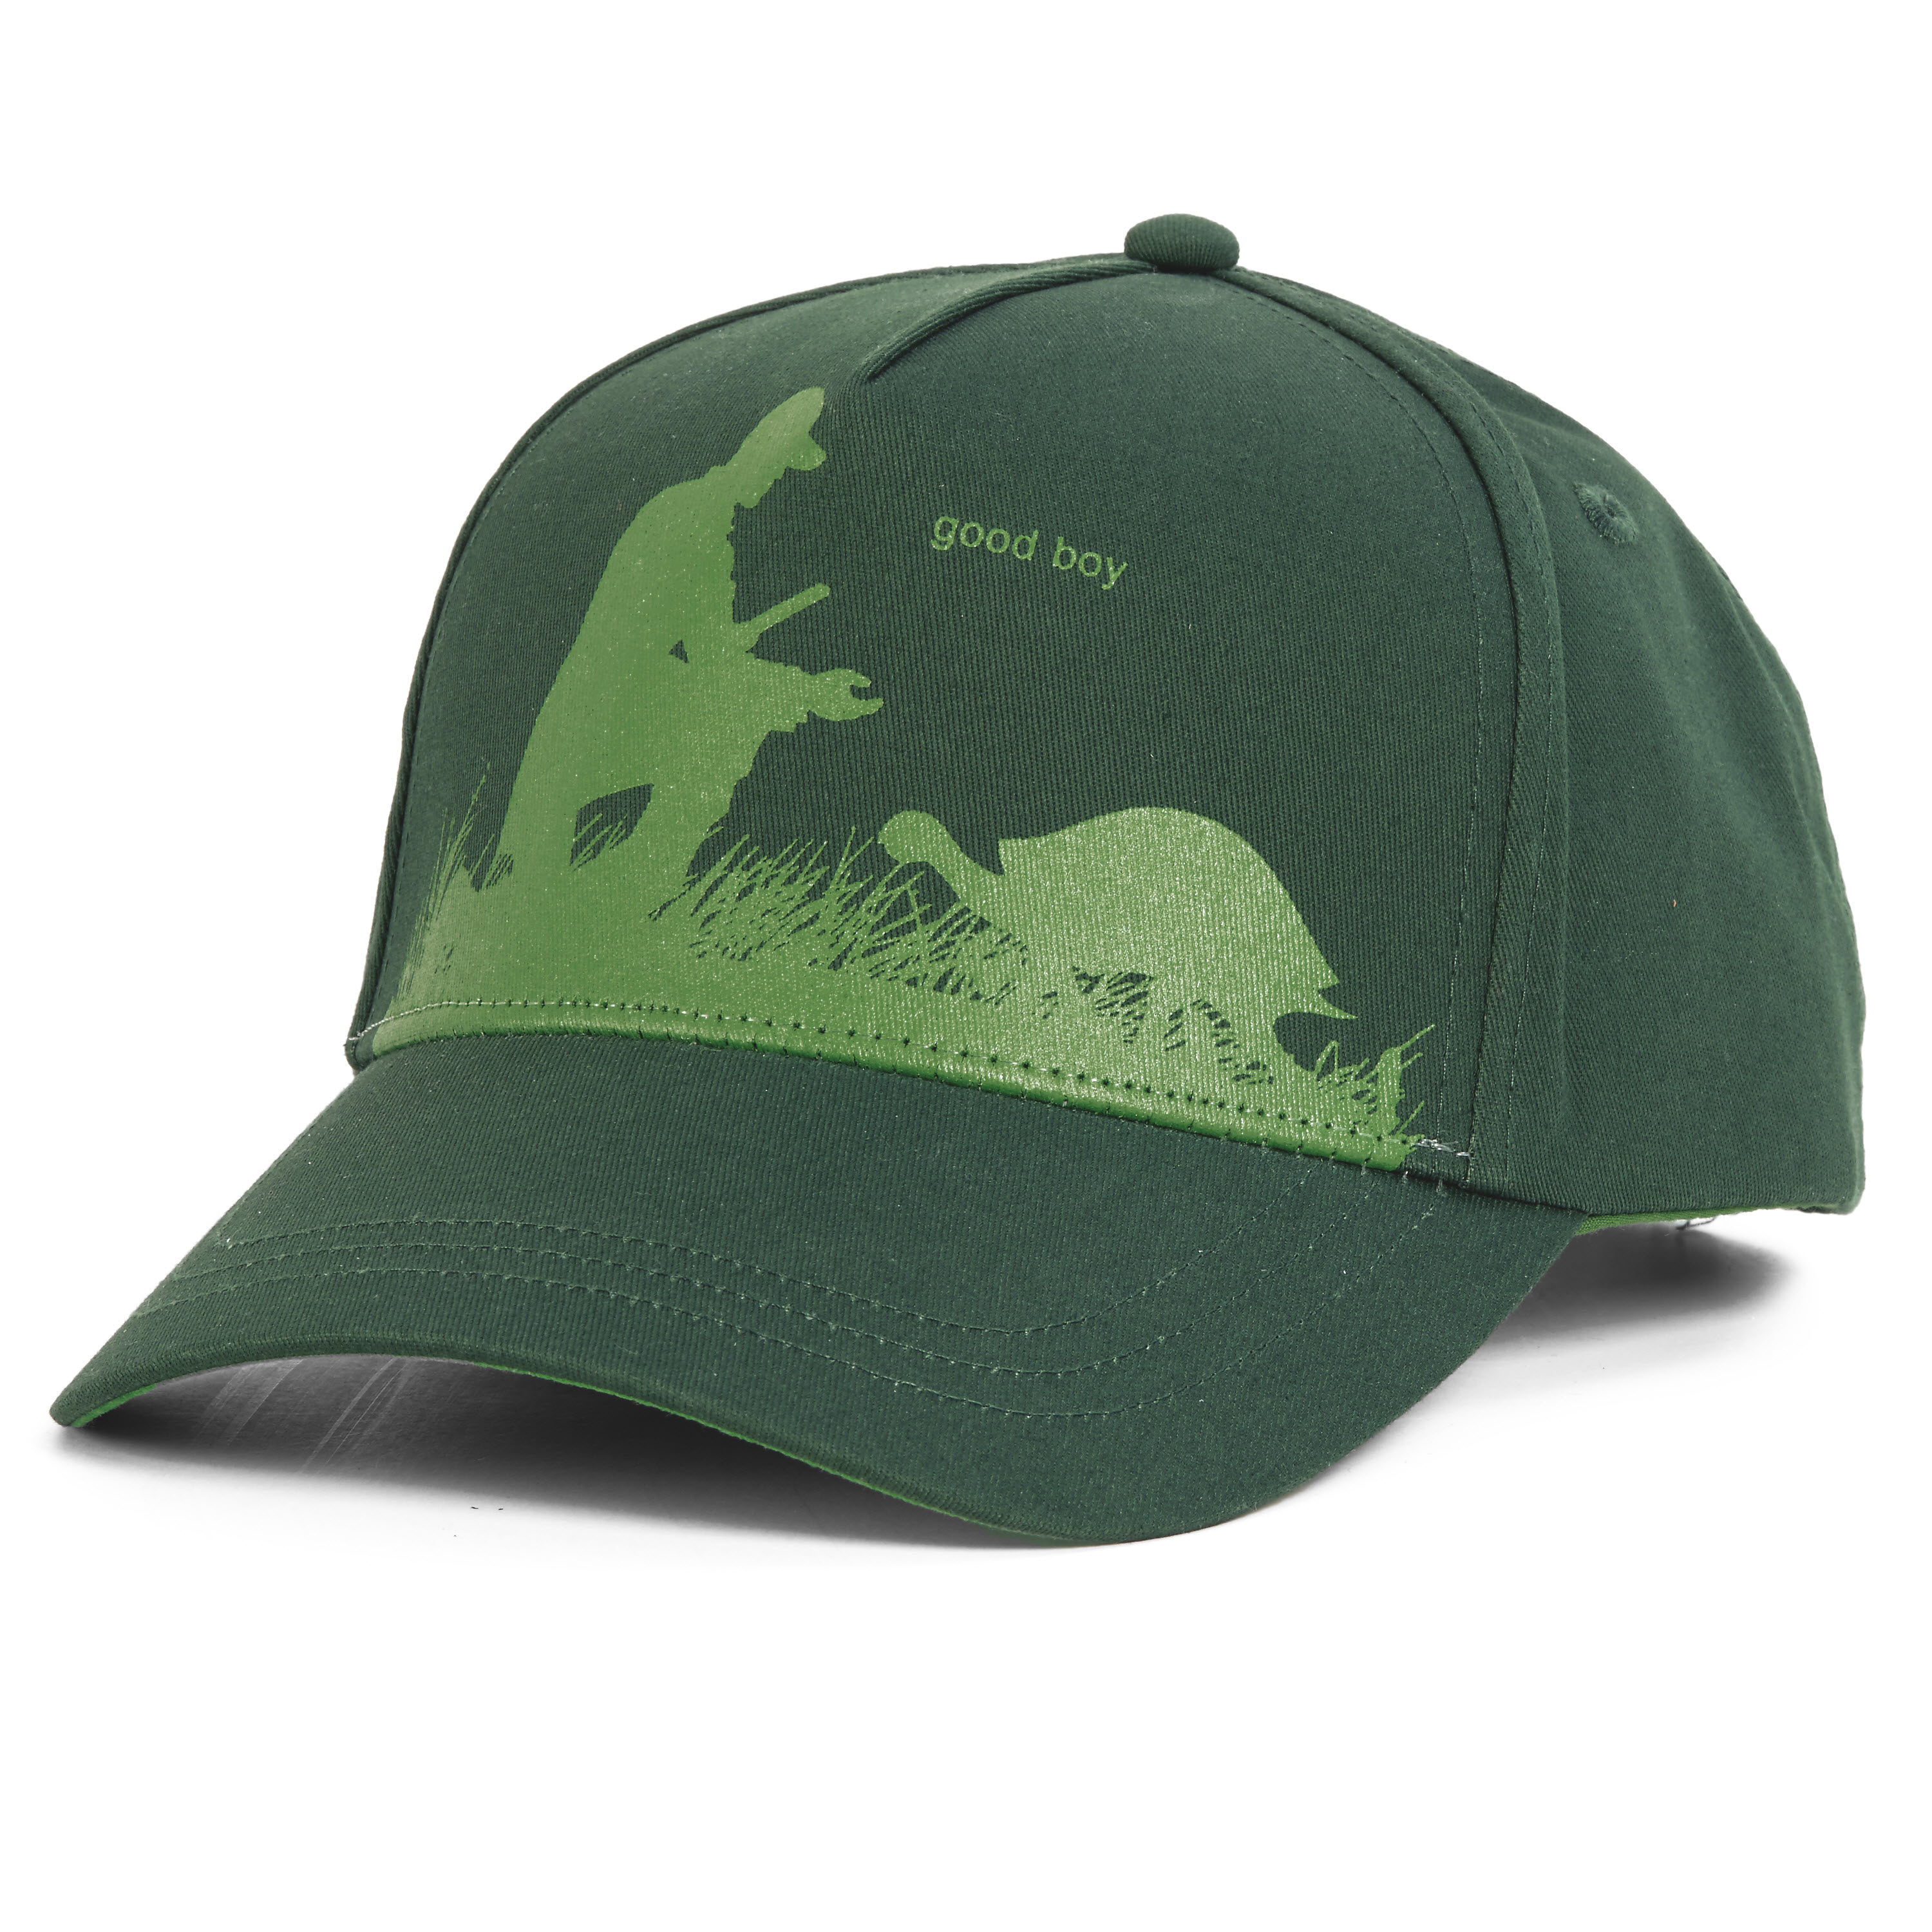 Turtle Fur Good Boy Trucker Baseball Cap